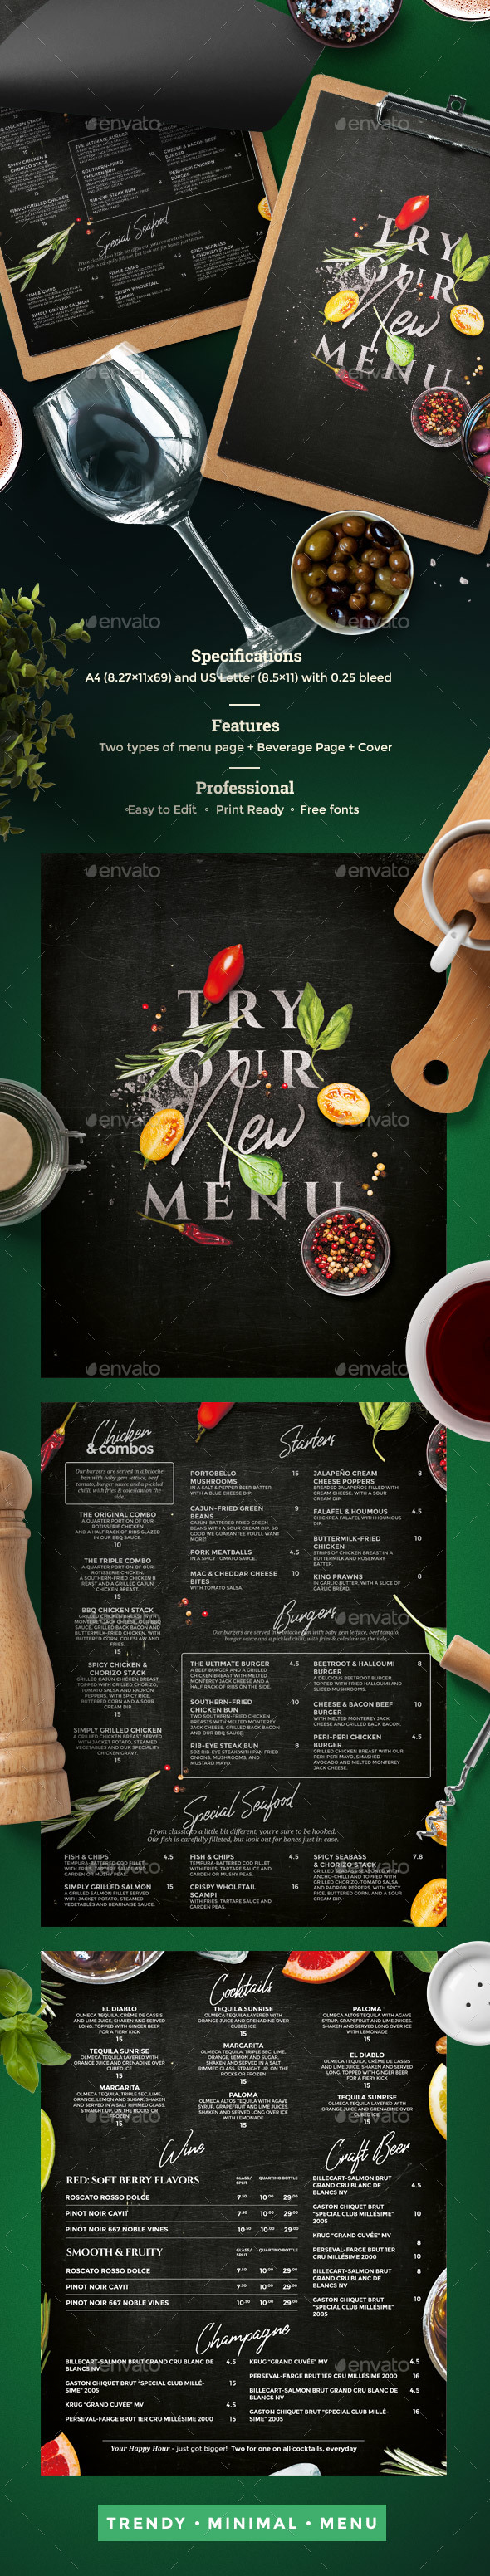 GraphicRiver Chalkboard Menu 21124841